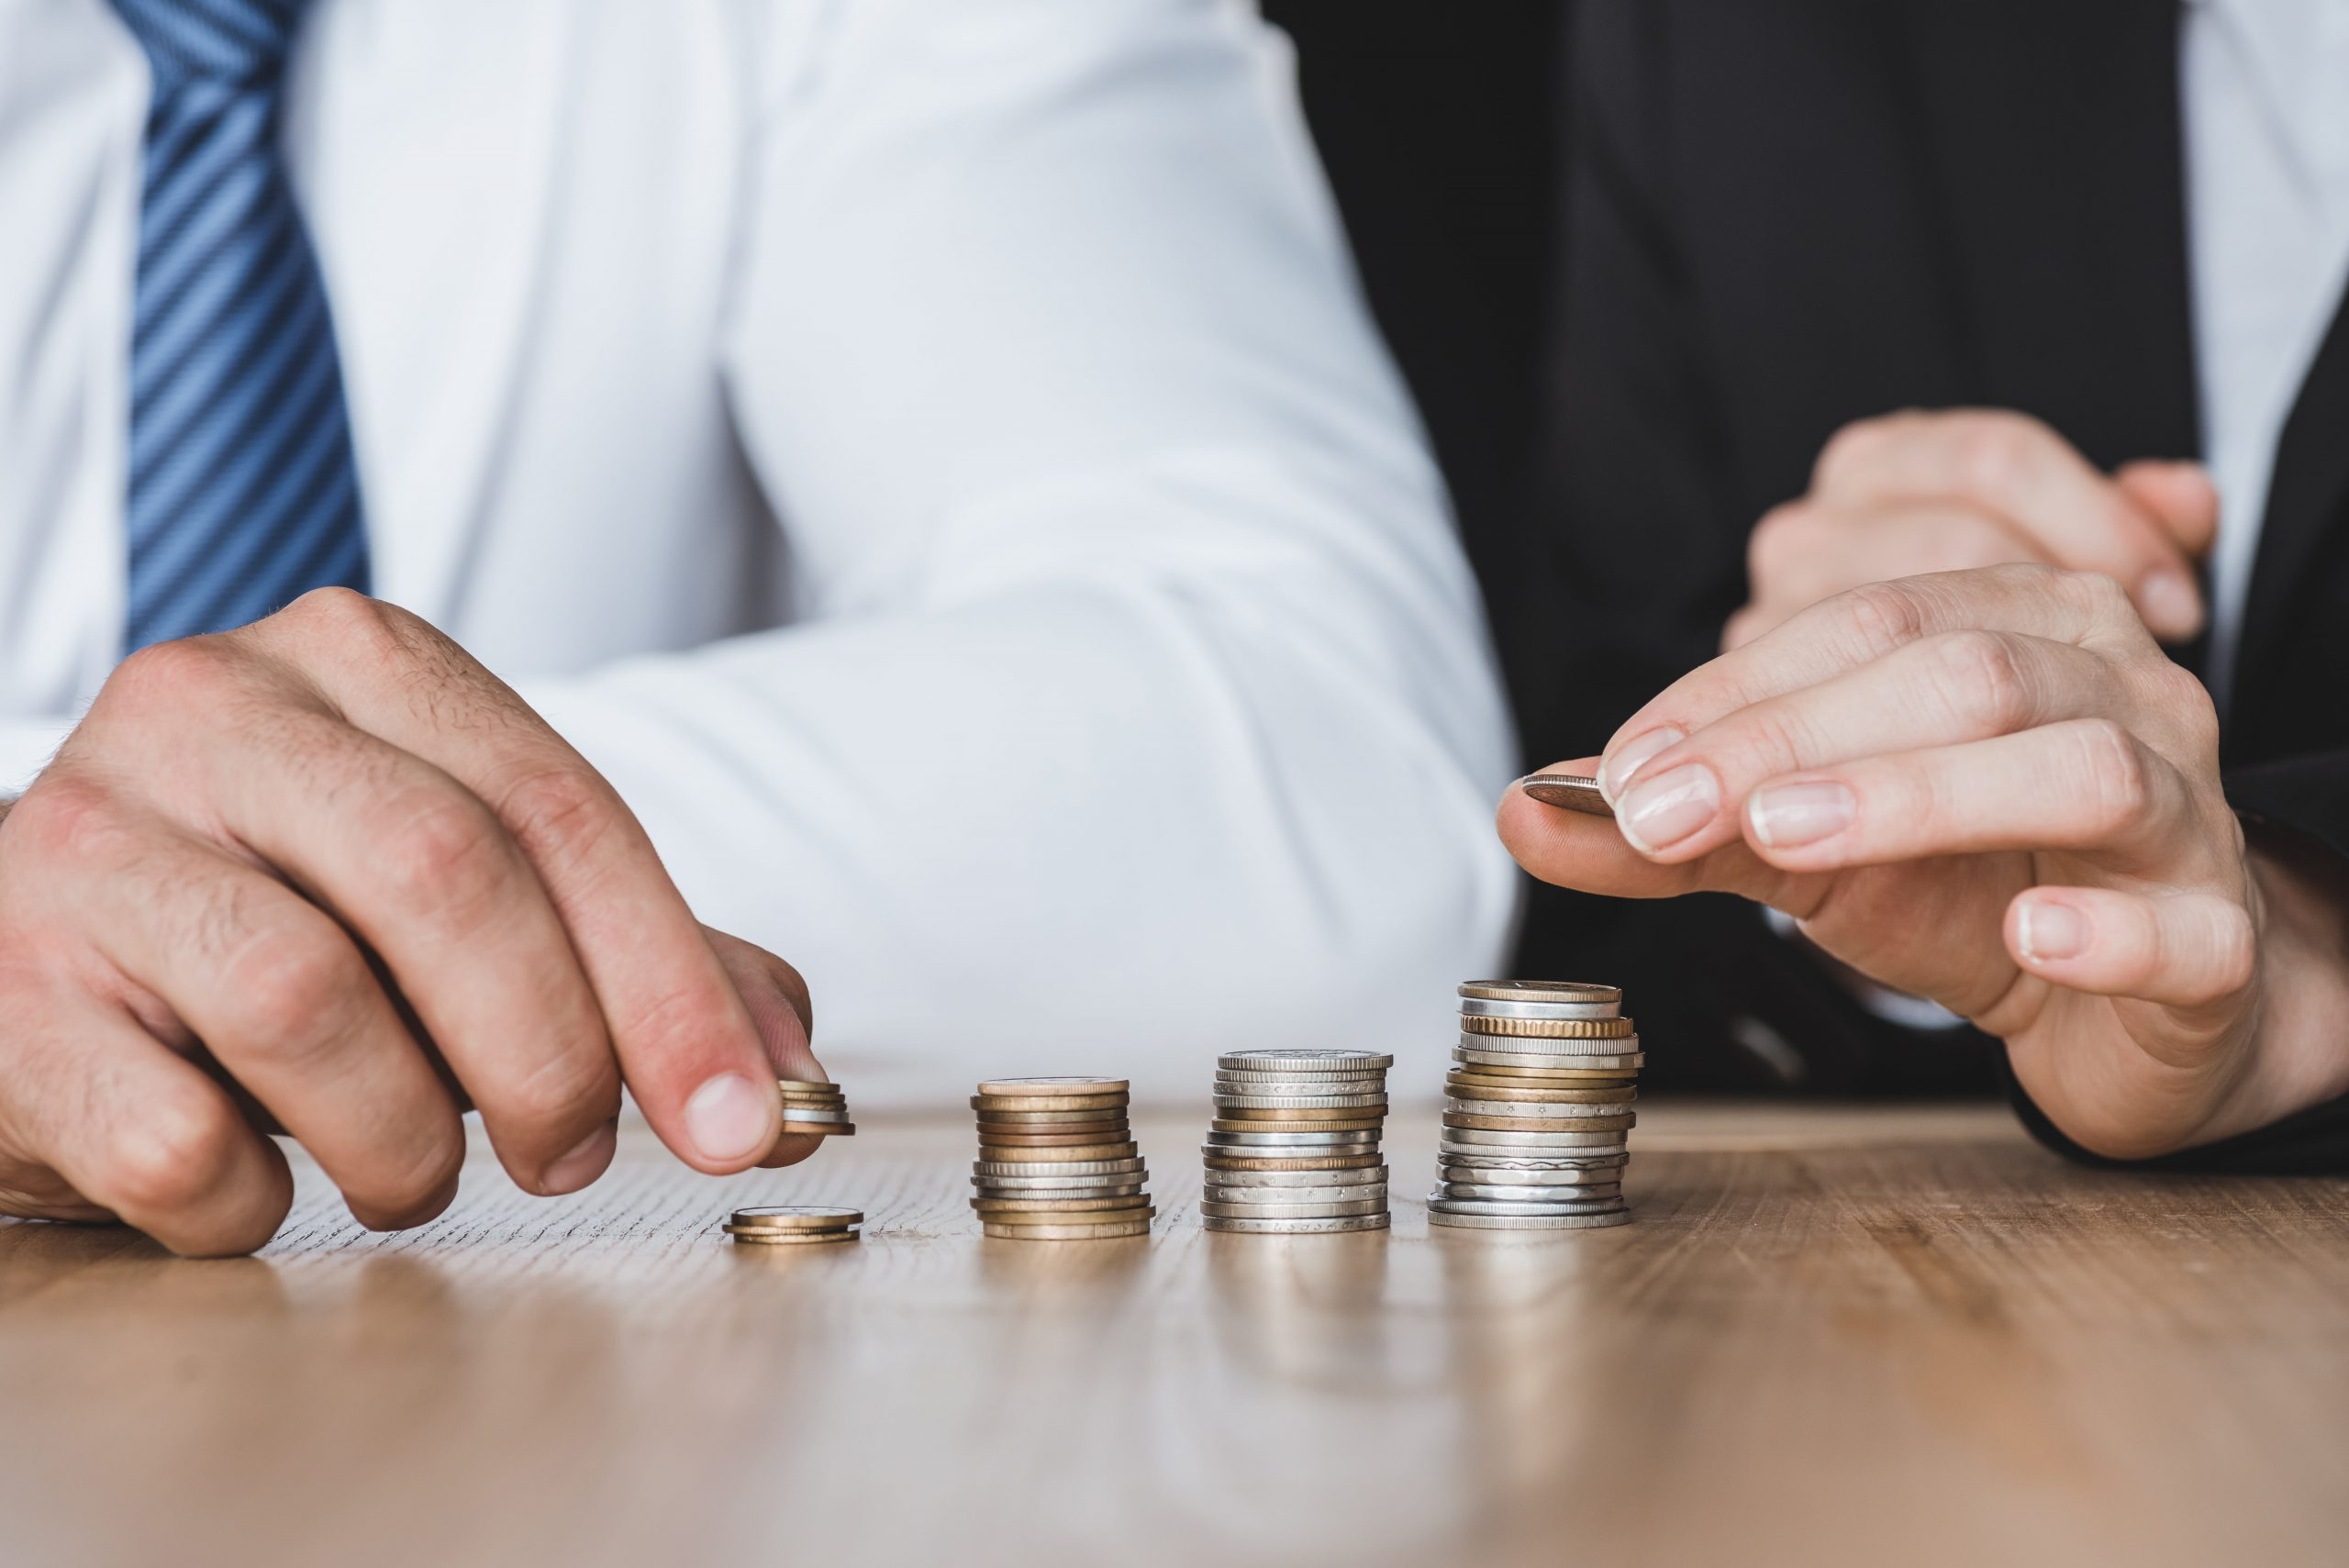 cropped-image-of-financiers-stacking-coins-on-tabl-VAAAWAP-min